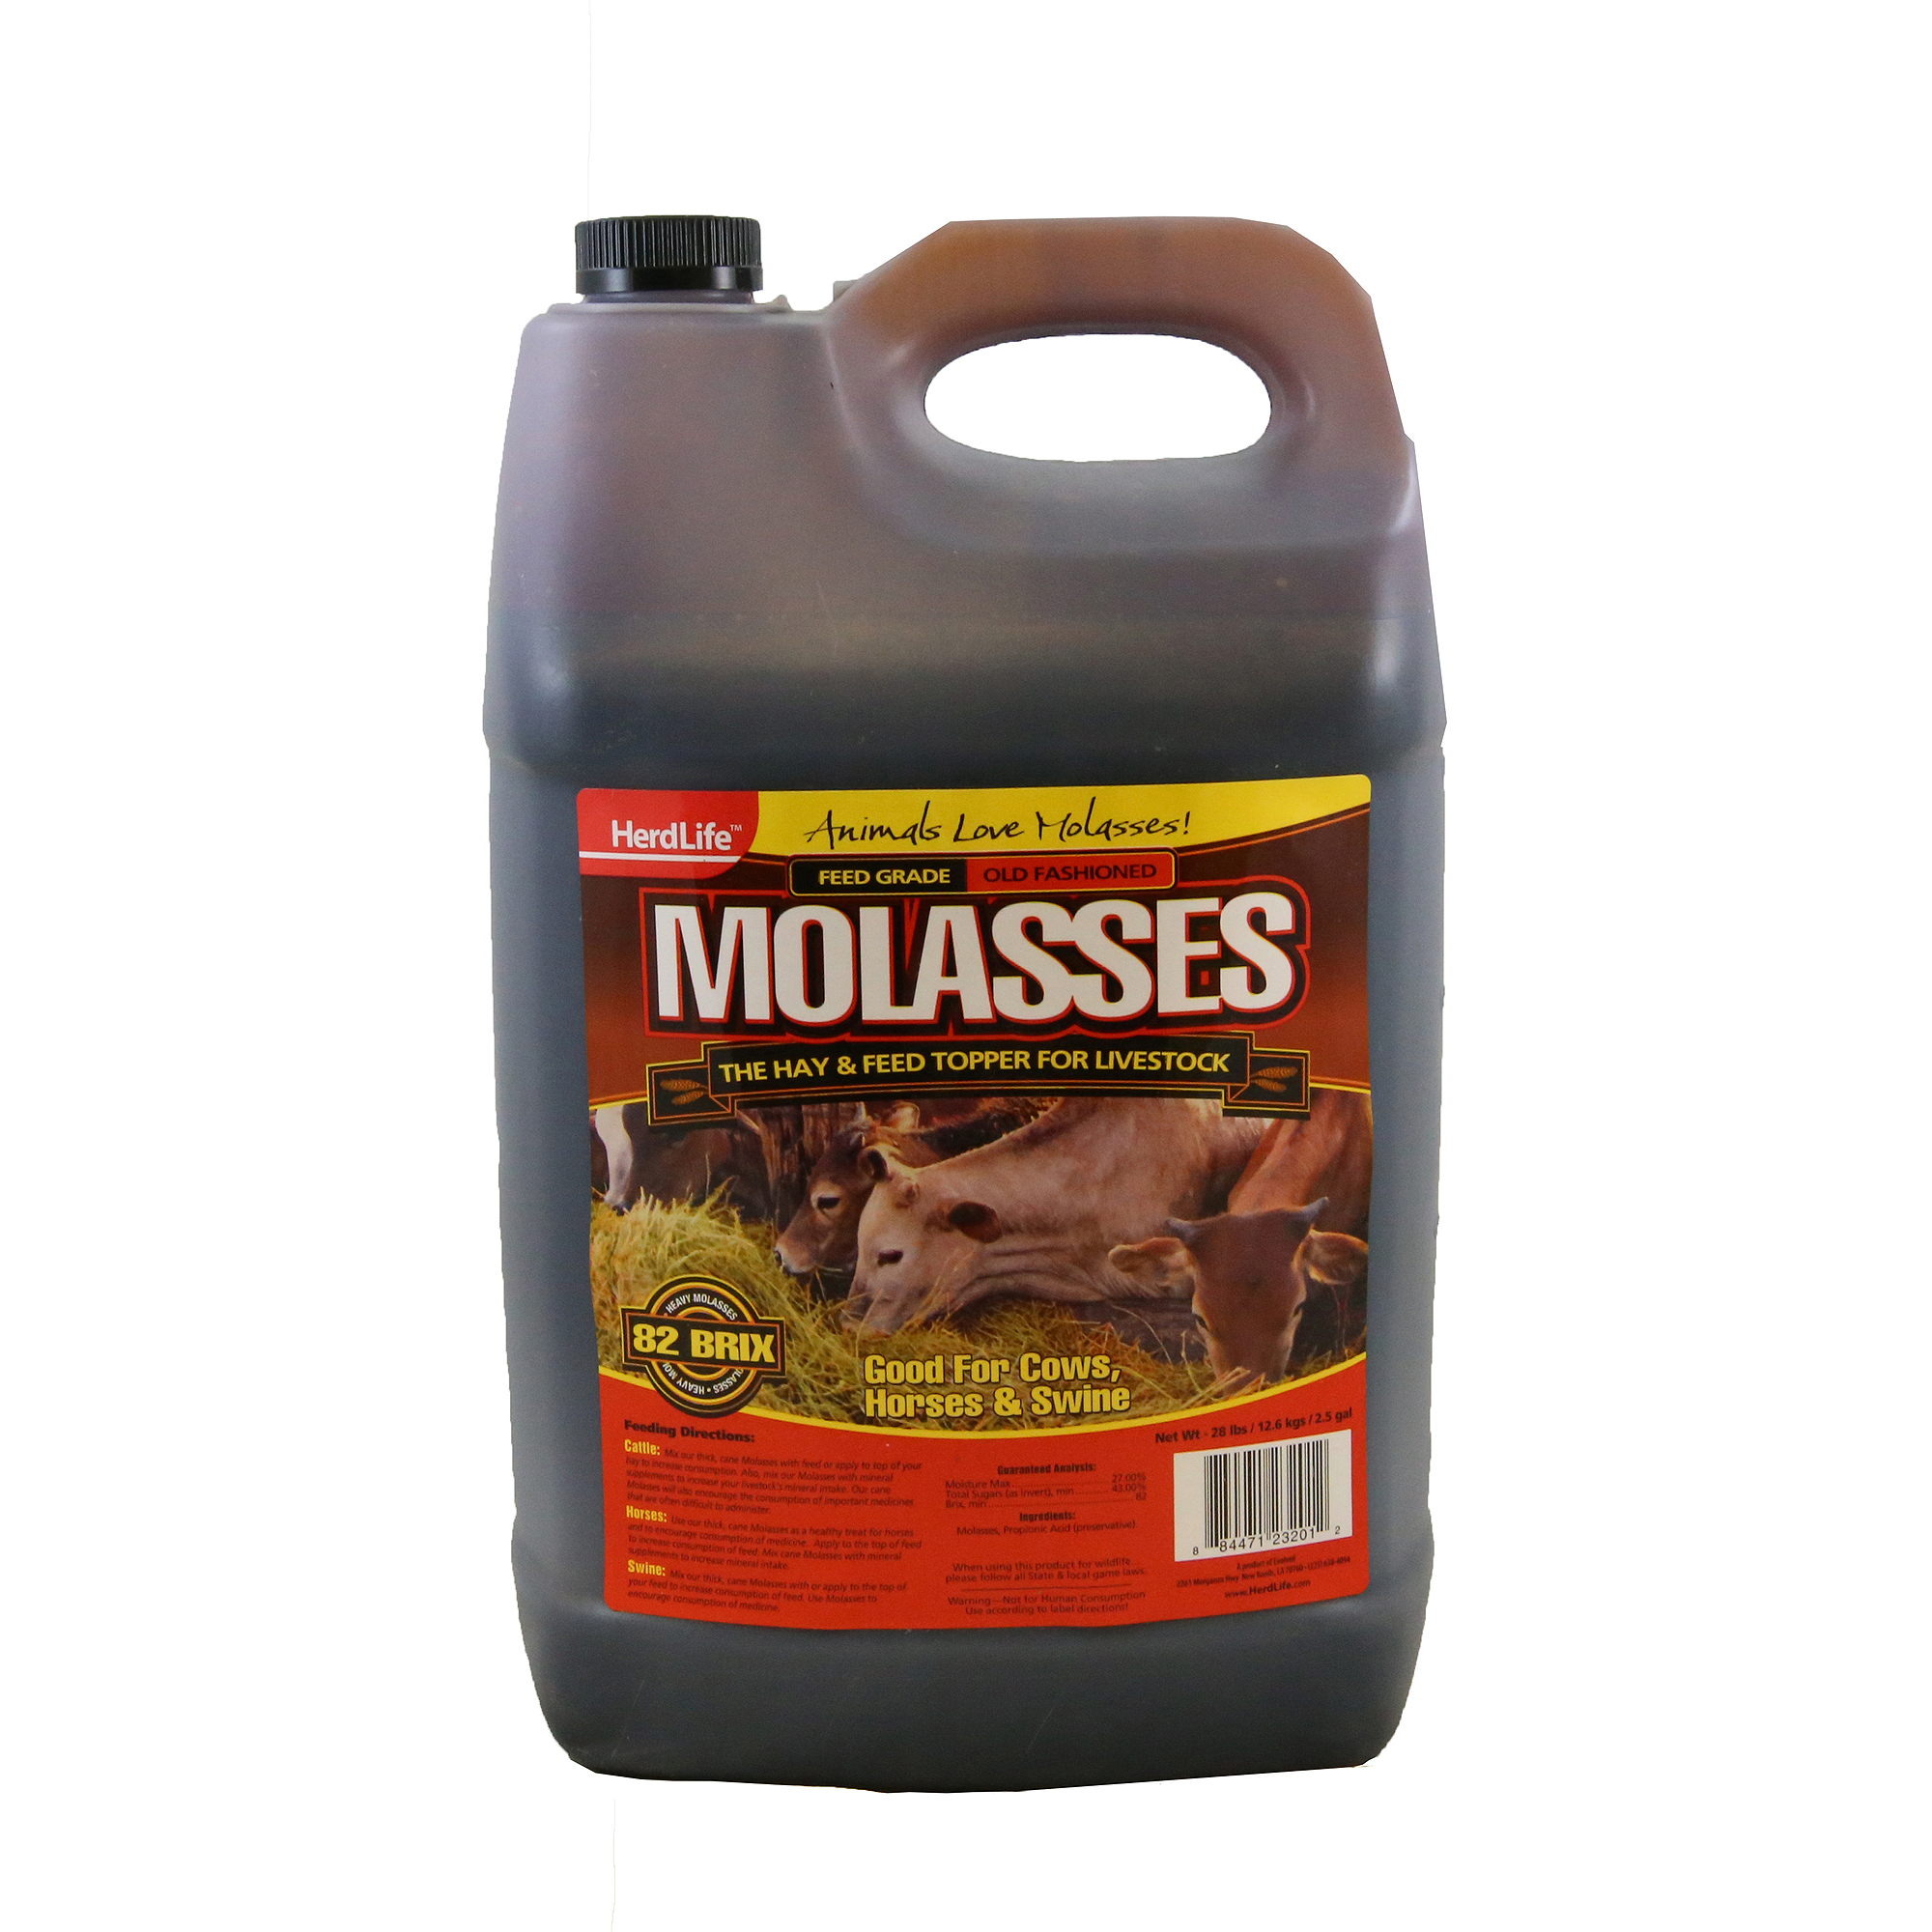 Herd Life Livestock Molasses, 2.5 gal